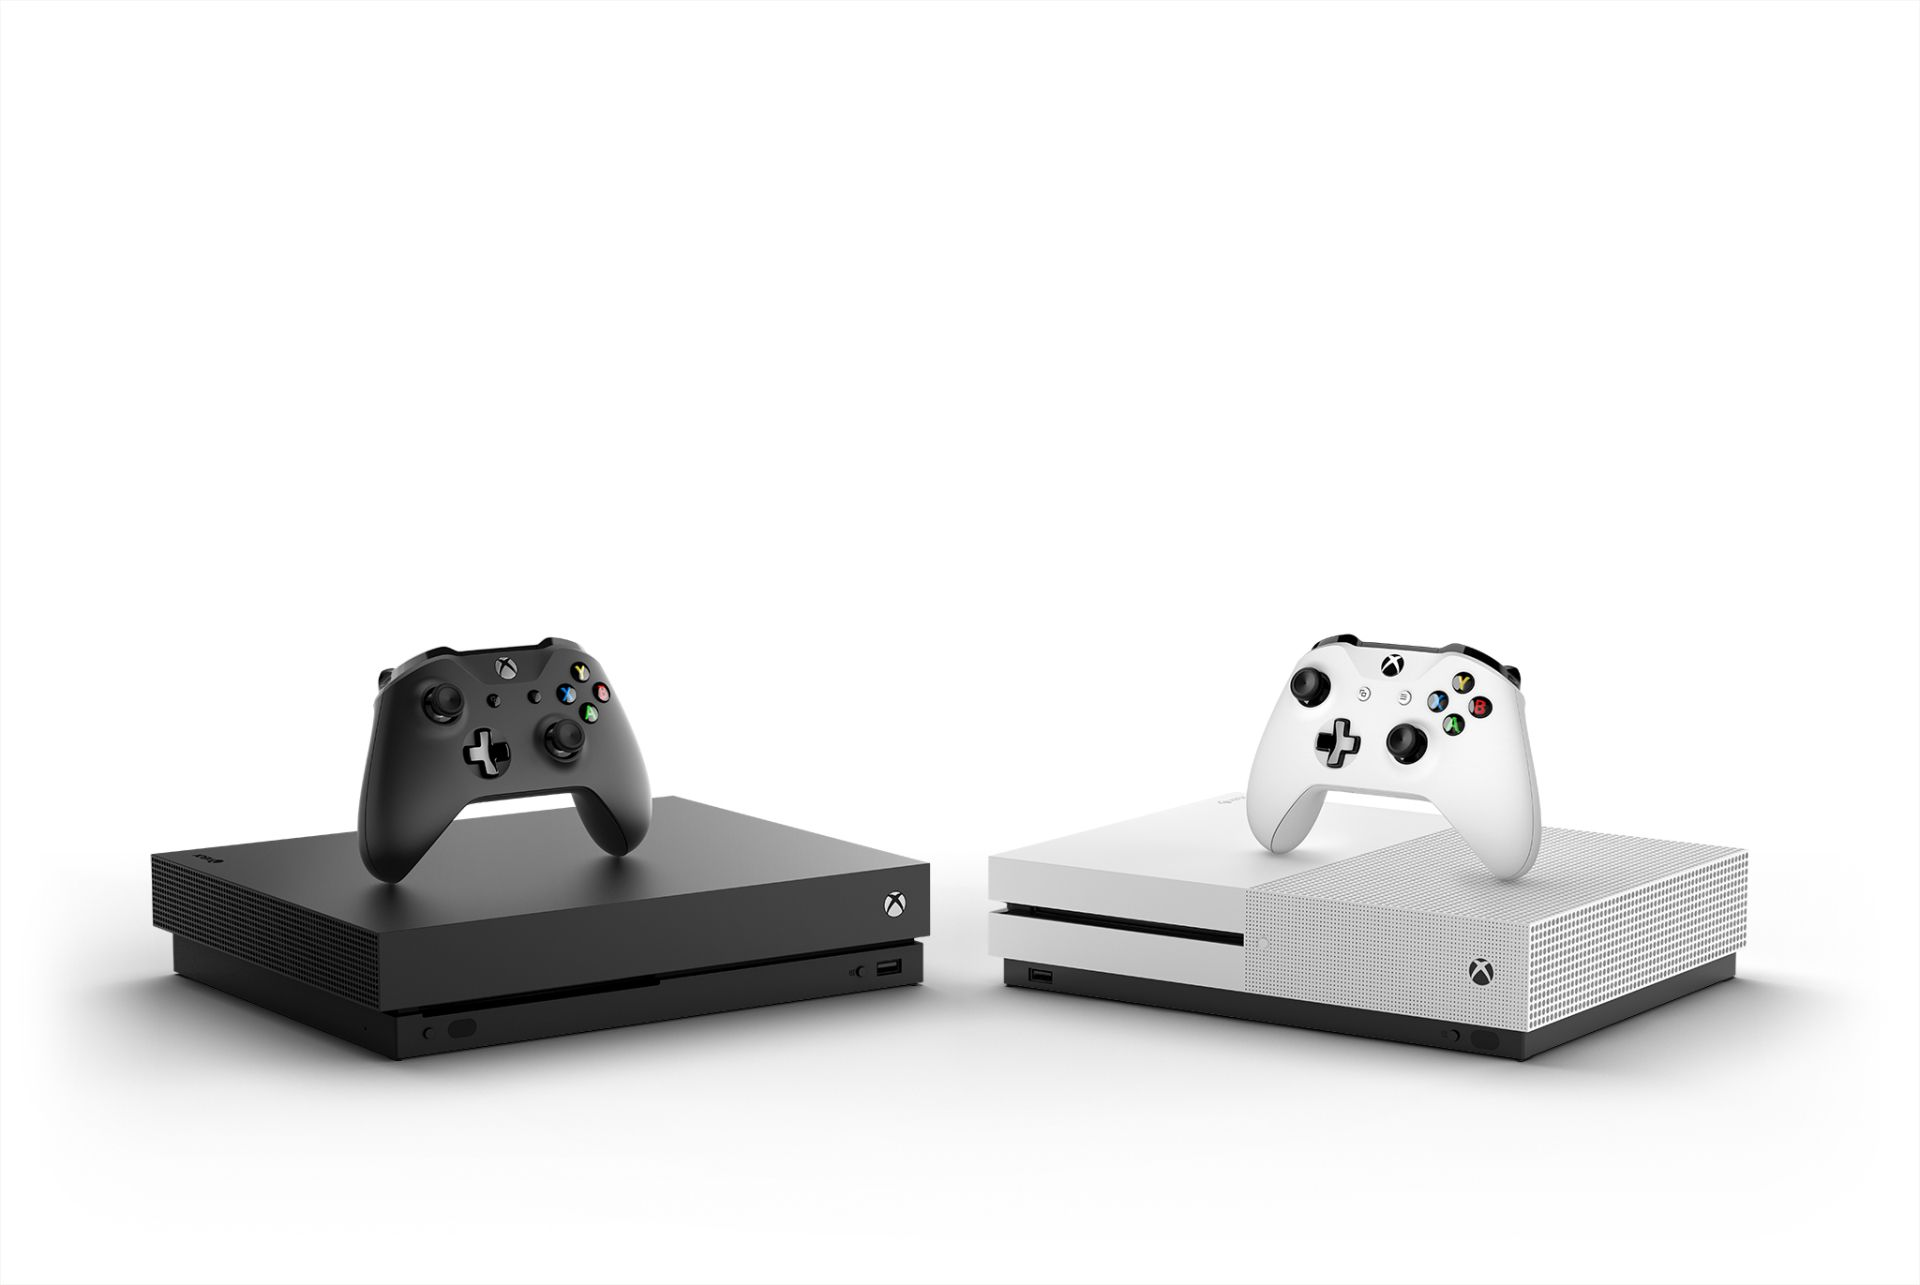 New Xbox One S drops disc drive, to go digital in May | The Star Online